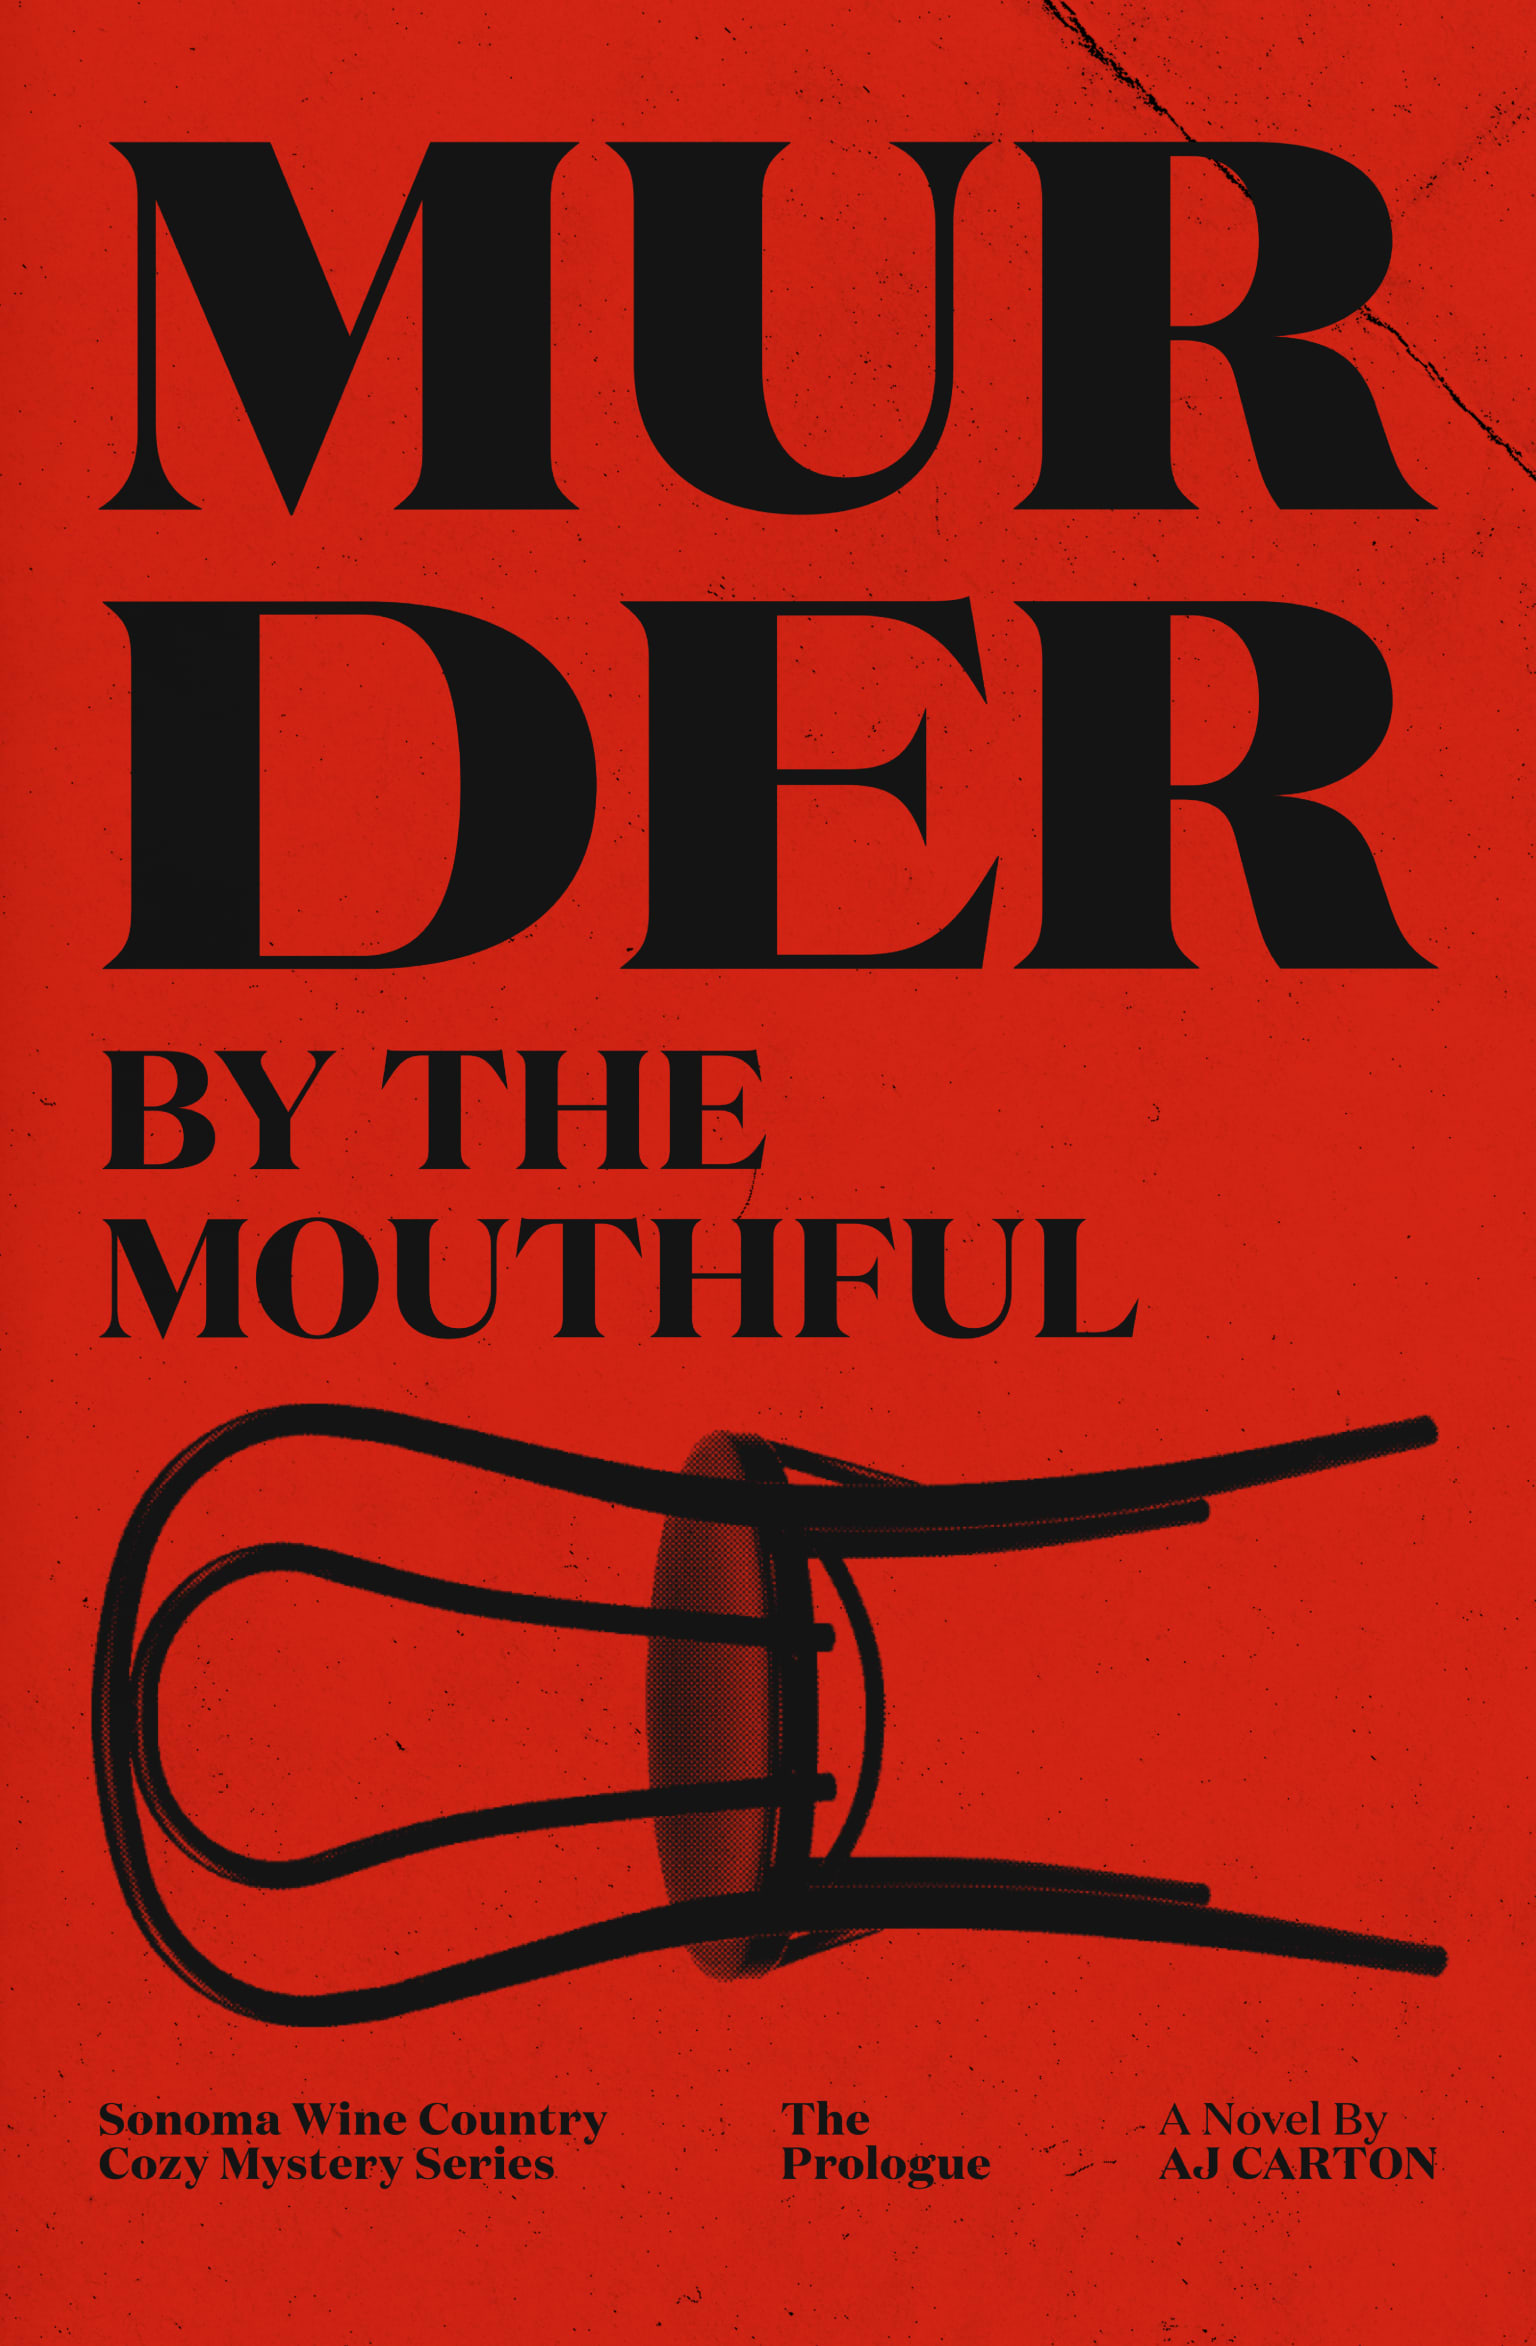 Murder by the Mouthful